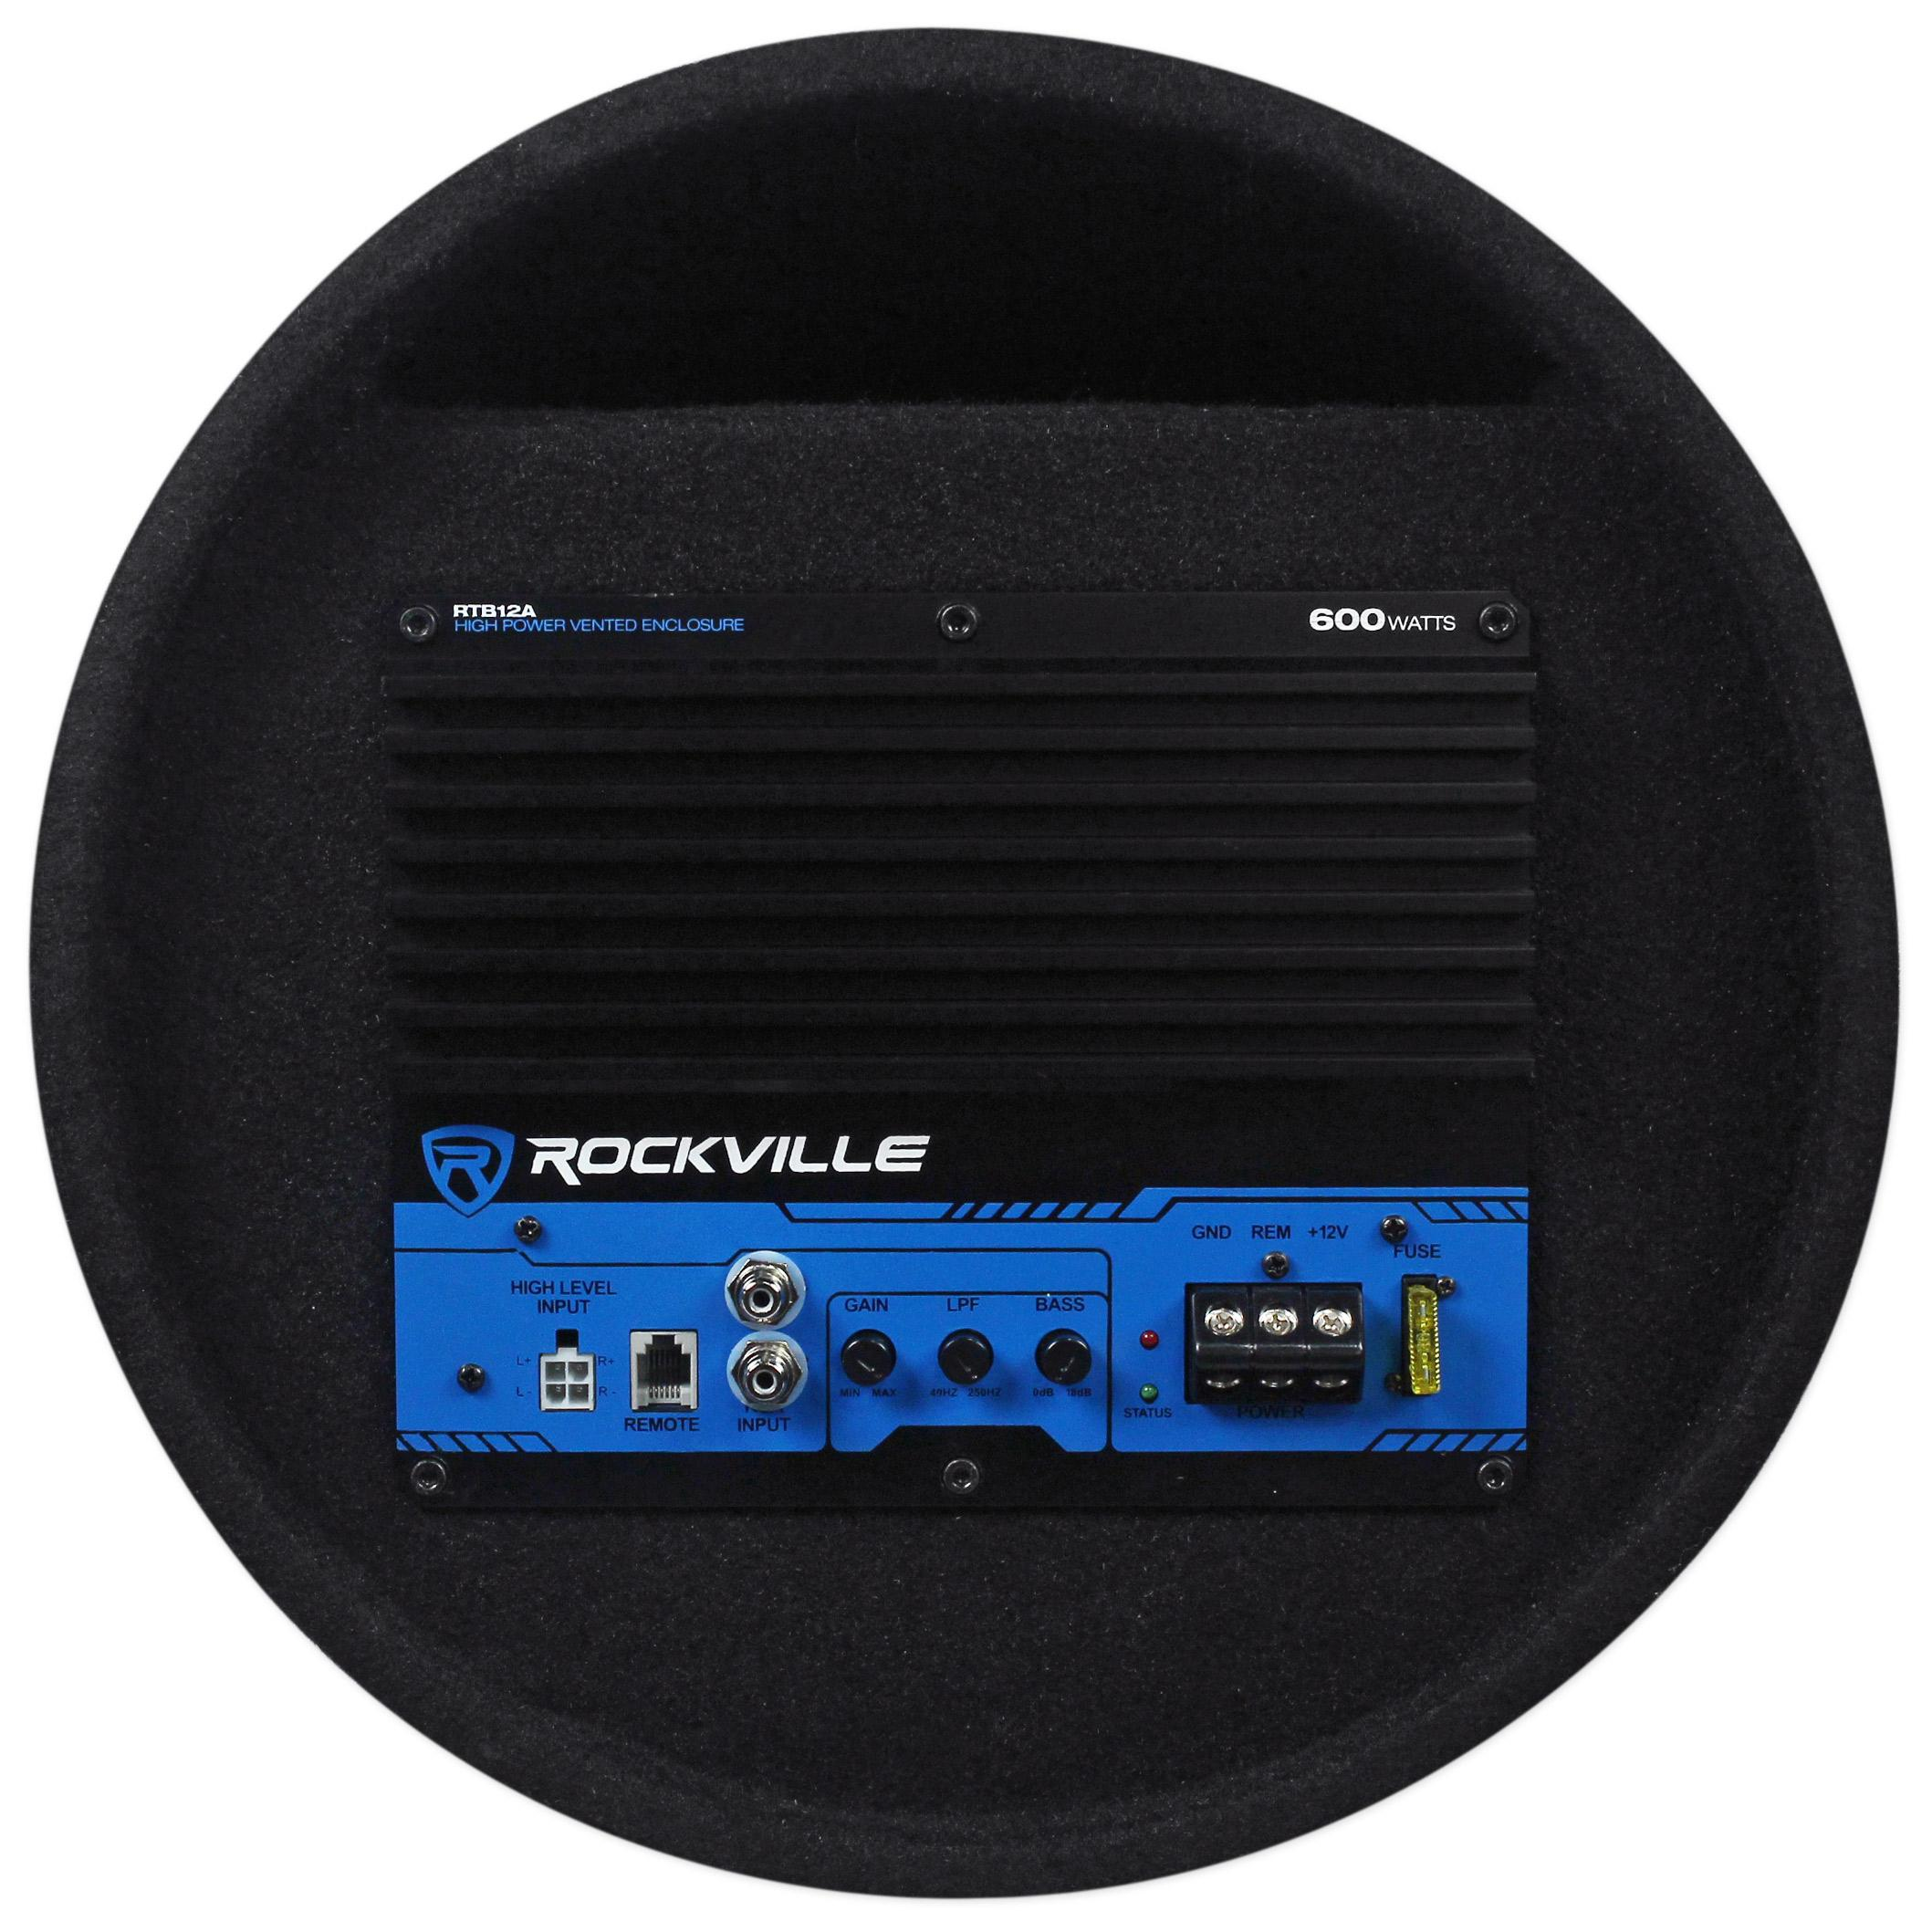 "Amazon.com: Rockville RTB12A 12"" 600w Powered Subwoofer"